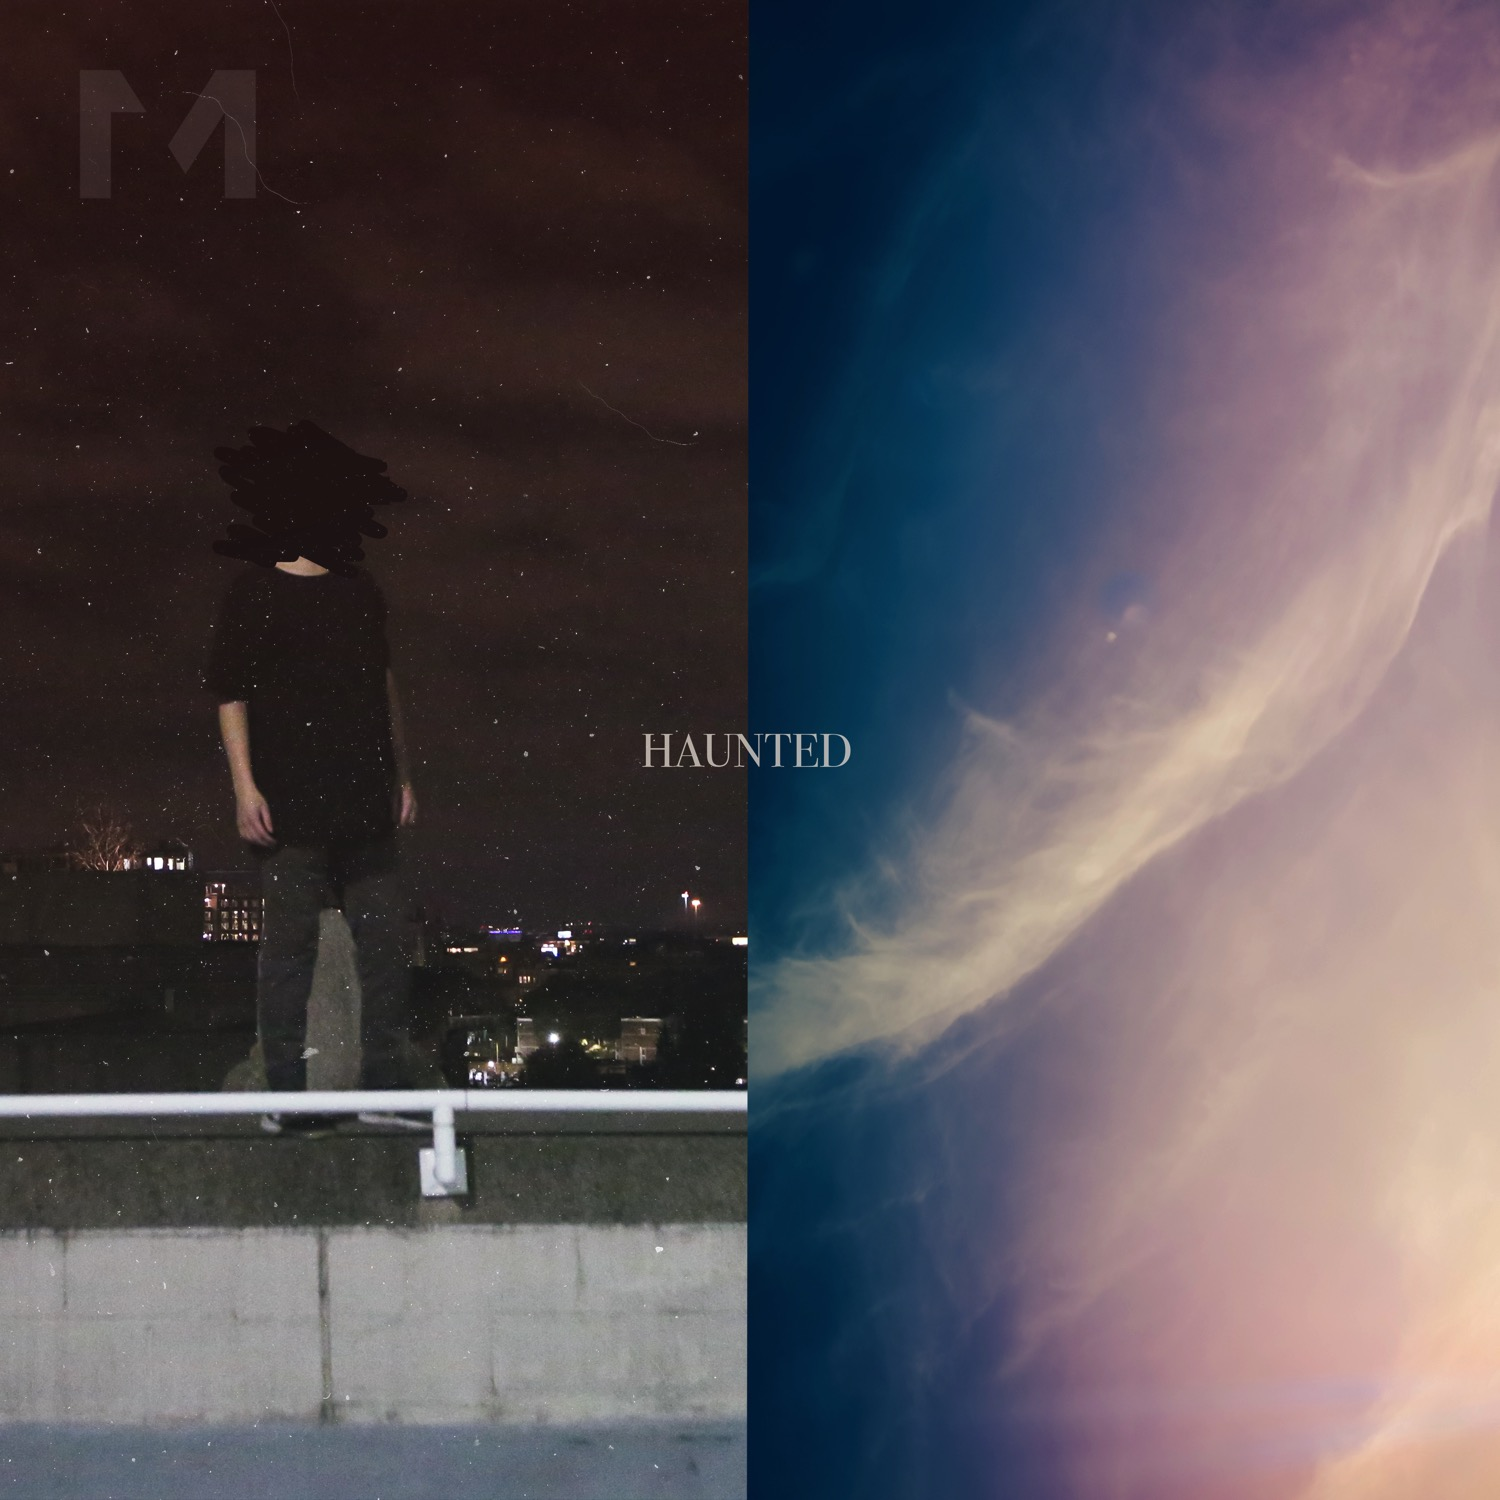 Restless Modern, 'Haunted' | Track Review